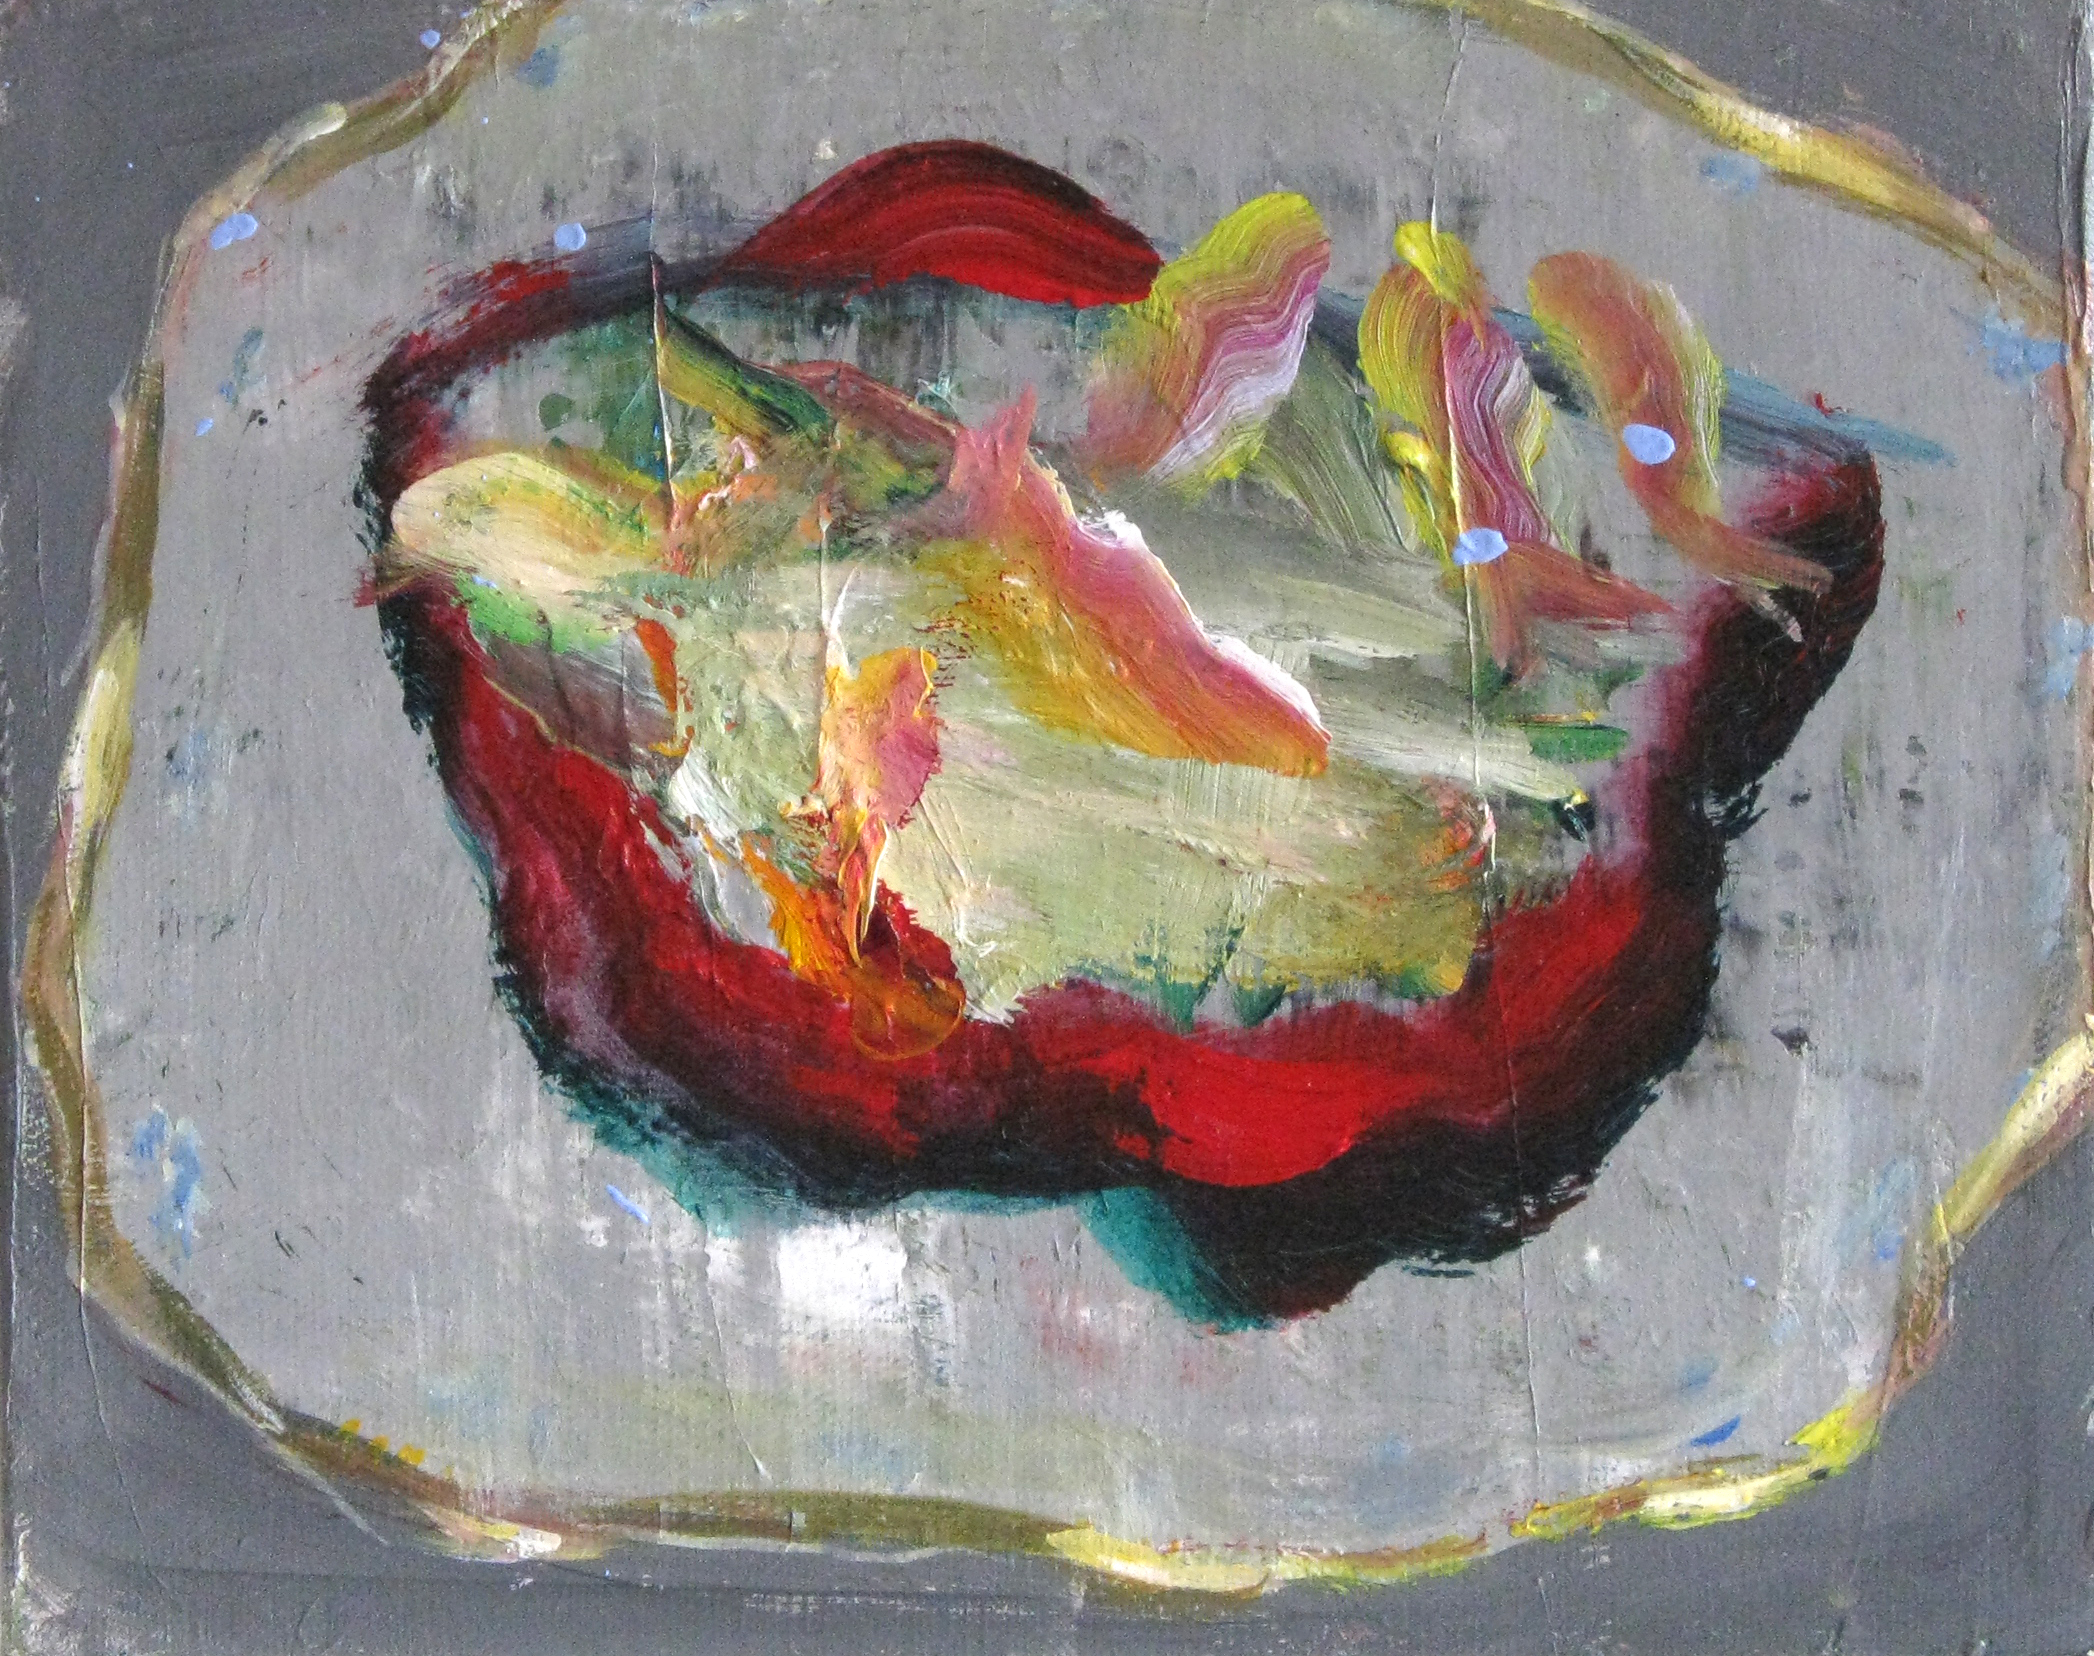 Judith Simonian, Red Fish Bowl, 2014, acrylic on canvas, 8h x 10w in.